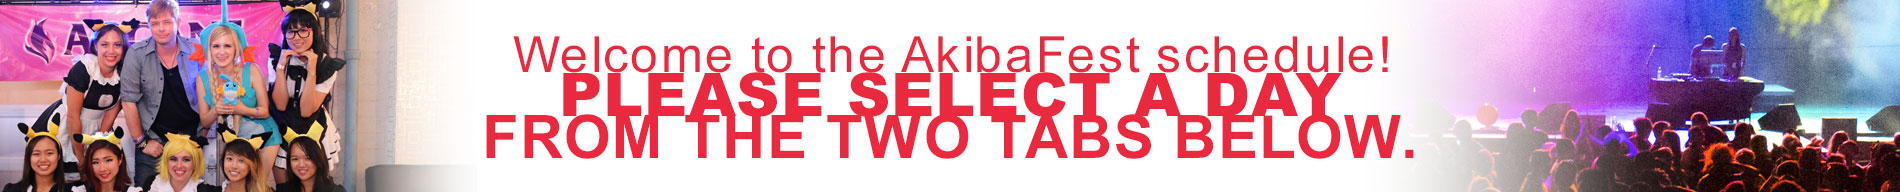 Welcome to the AkibaFest schedule! Please select a day from the two tabs below.